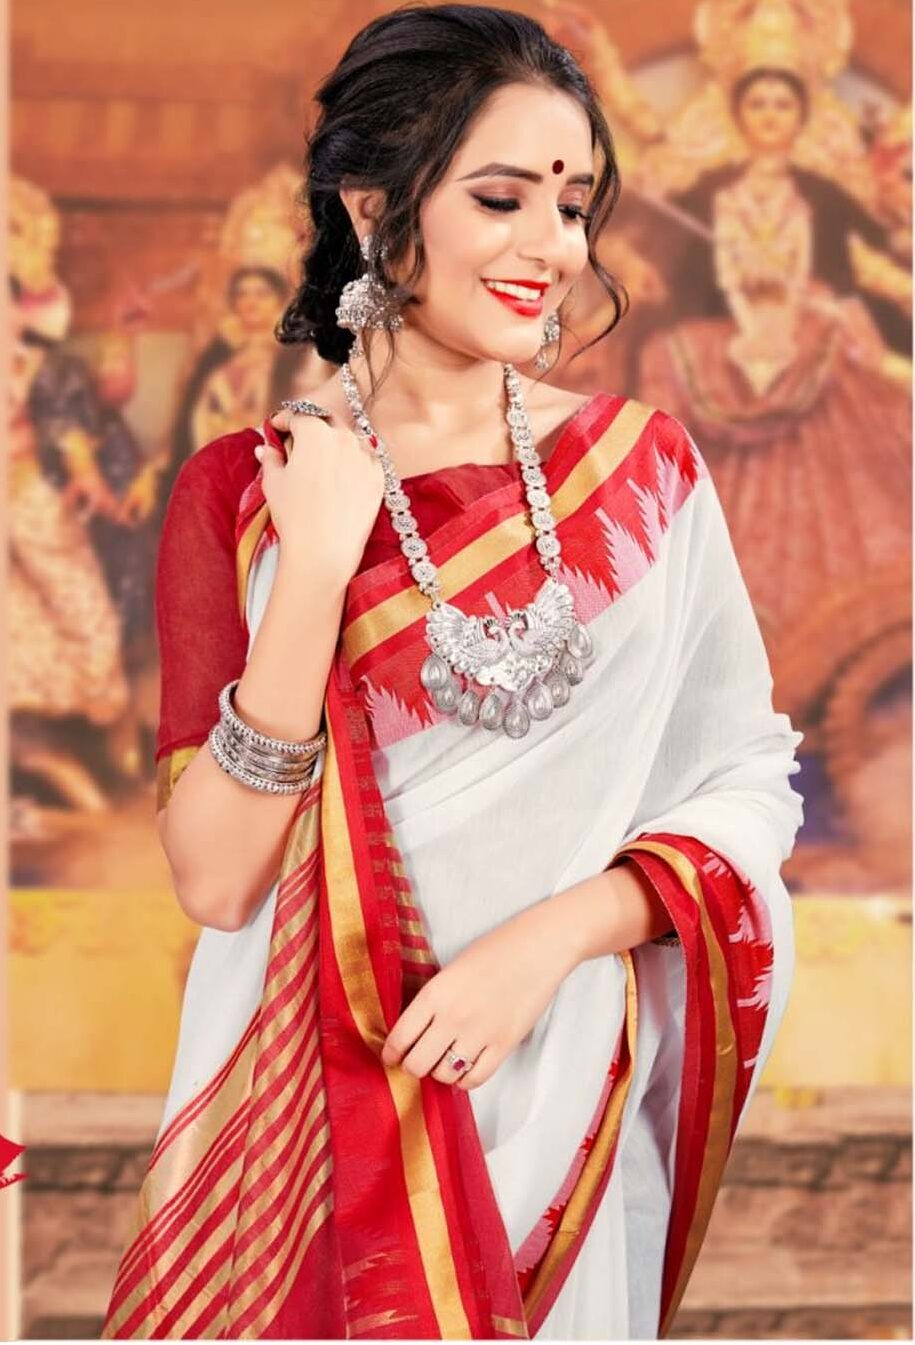 Red and White Sarees Celebrate Durga Puja